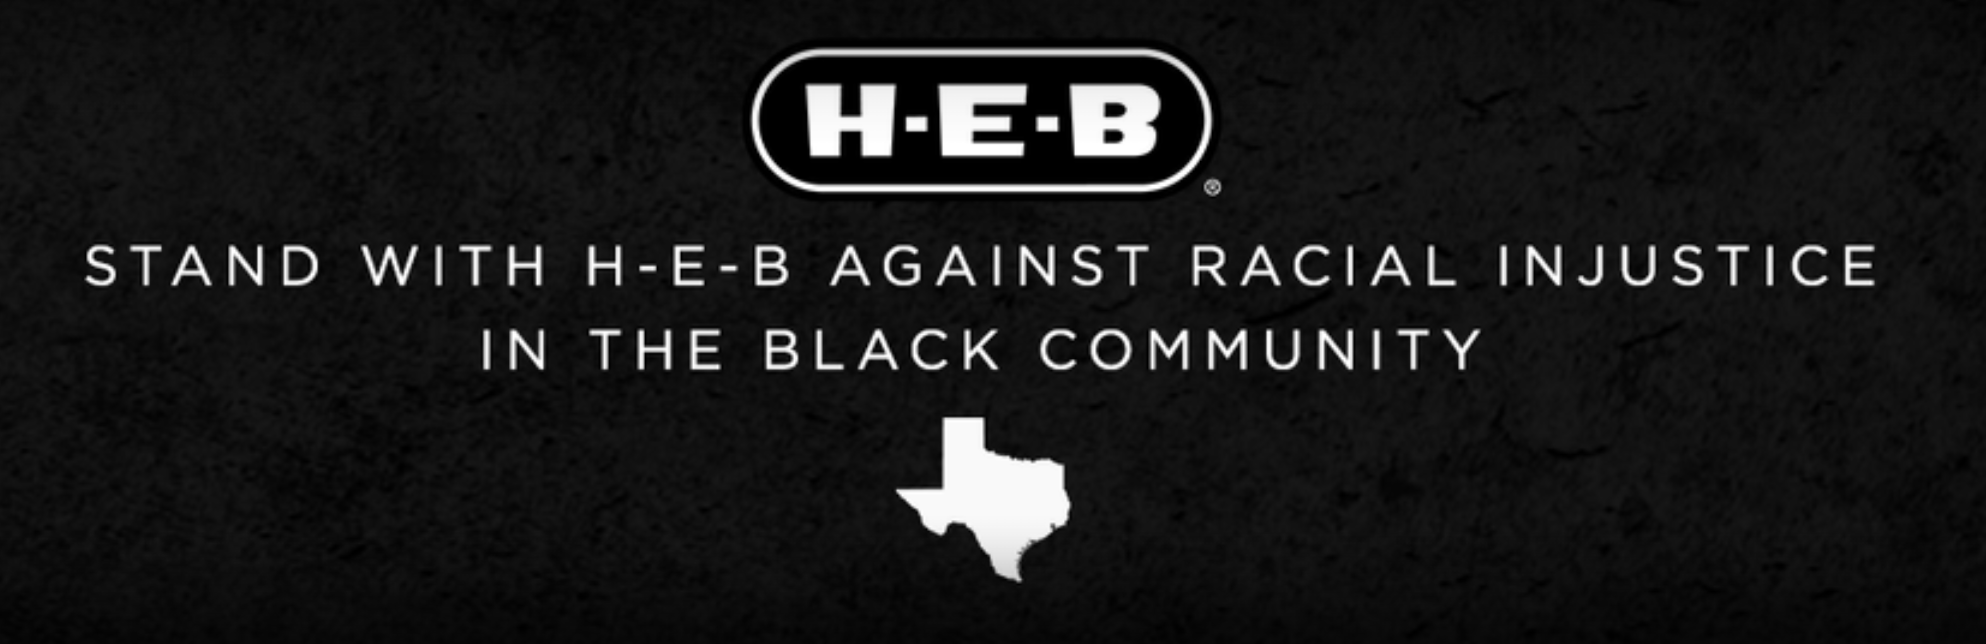 H-E-B racial injustice fund.png